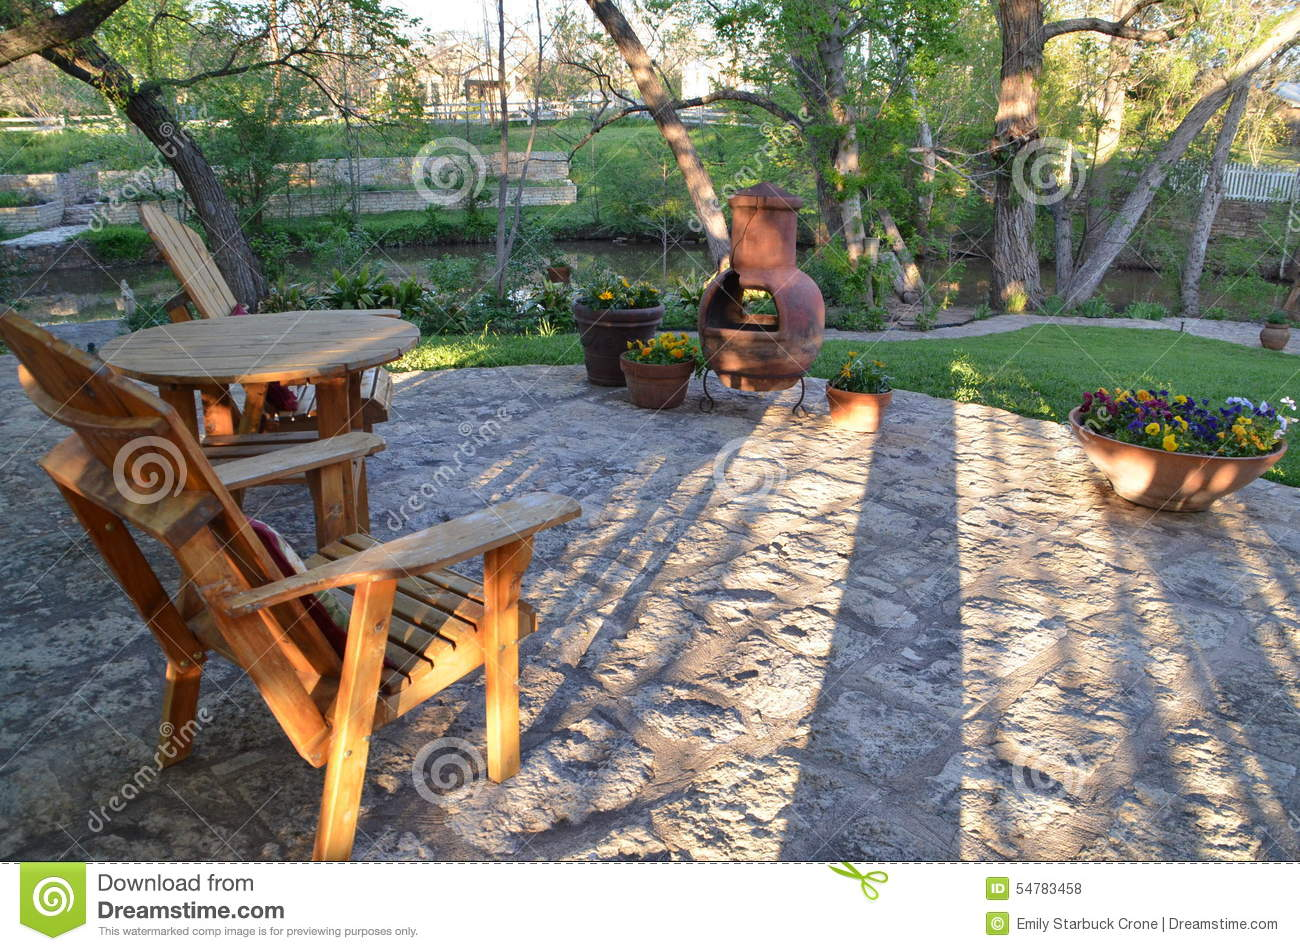 Vacation Home Plans Small Outdoor Patio With Wooden Furniture And Chiminea Stock